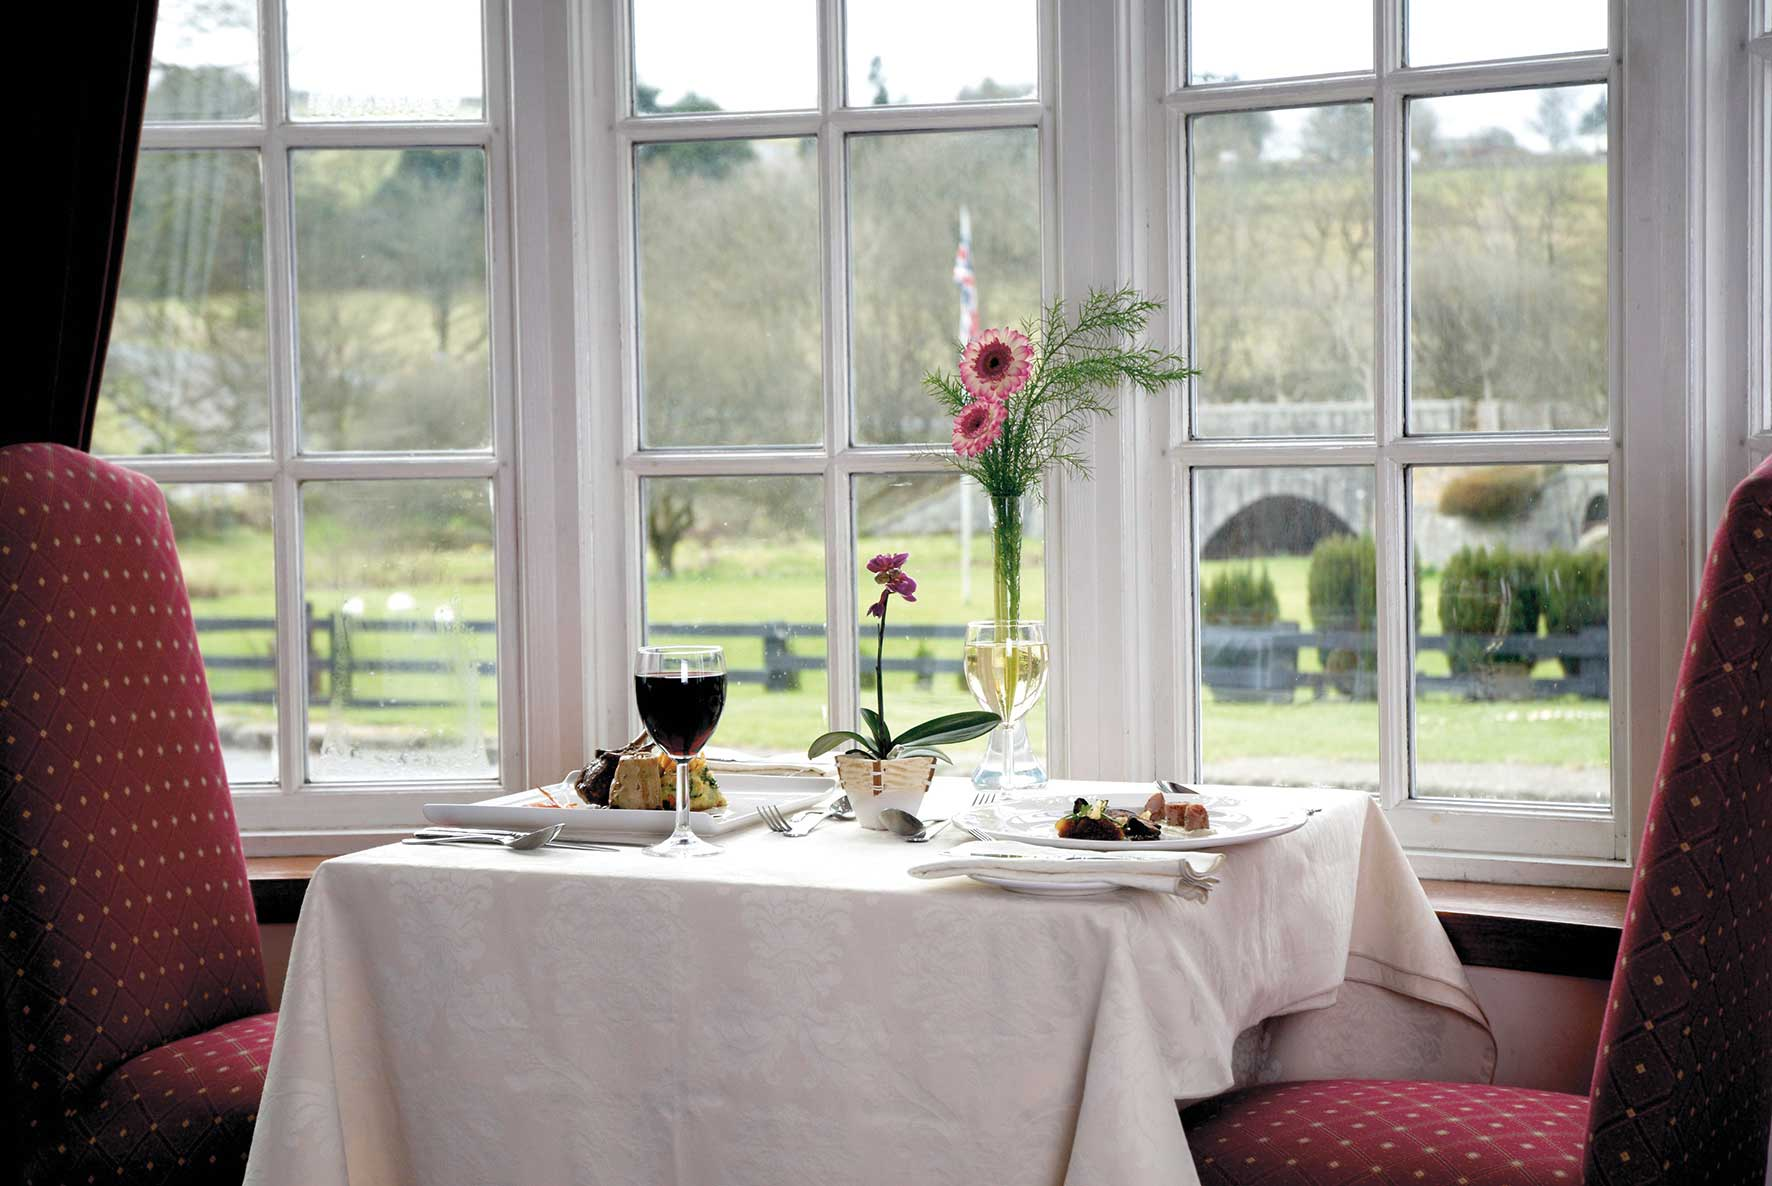 Enjoy views of moorland and the West Dart River from the Two Bridges Hotel